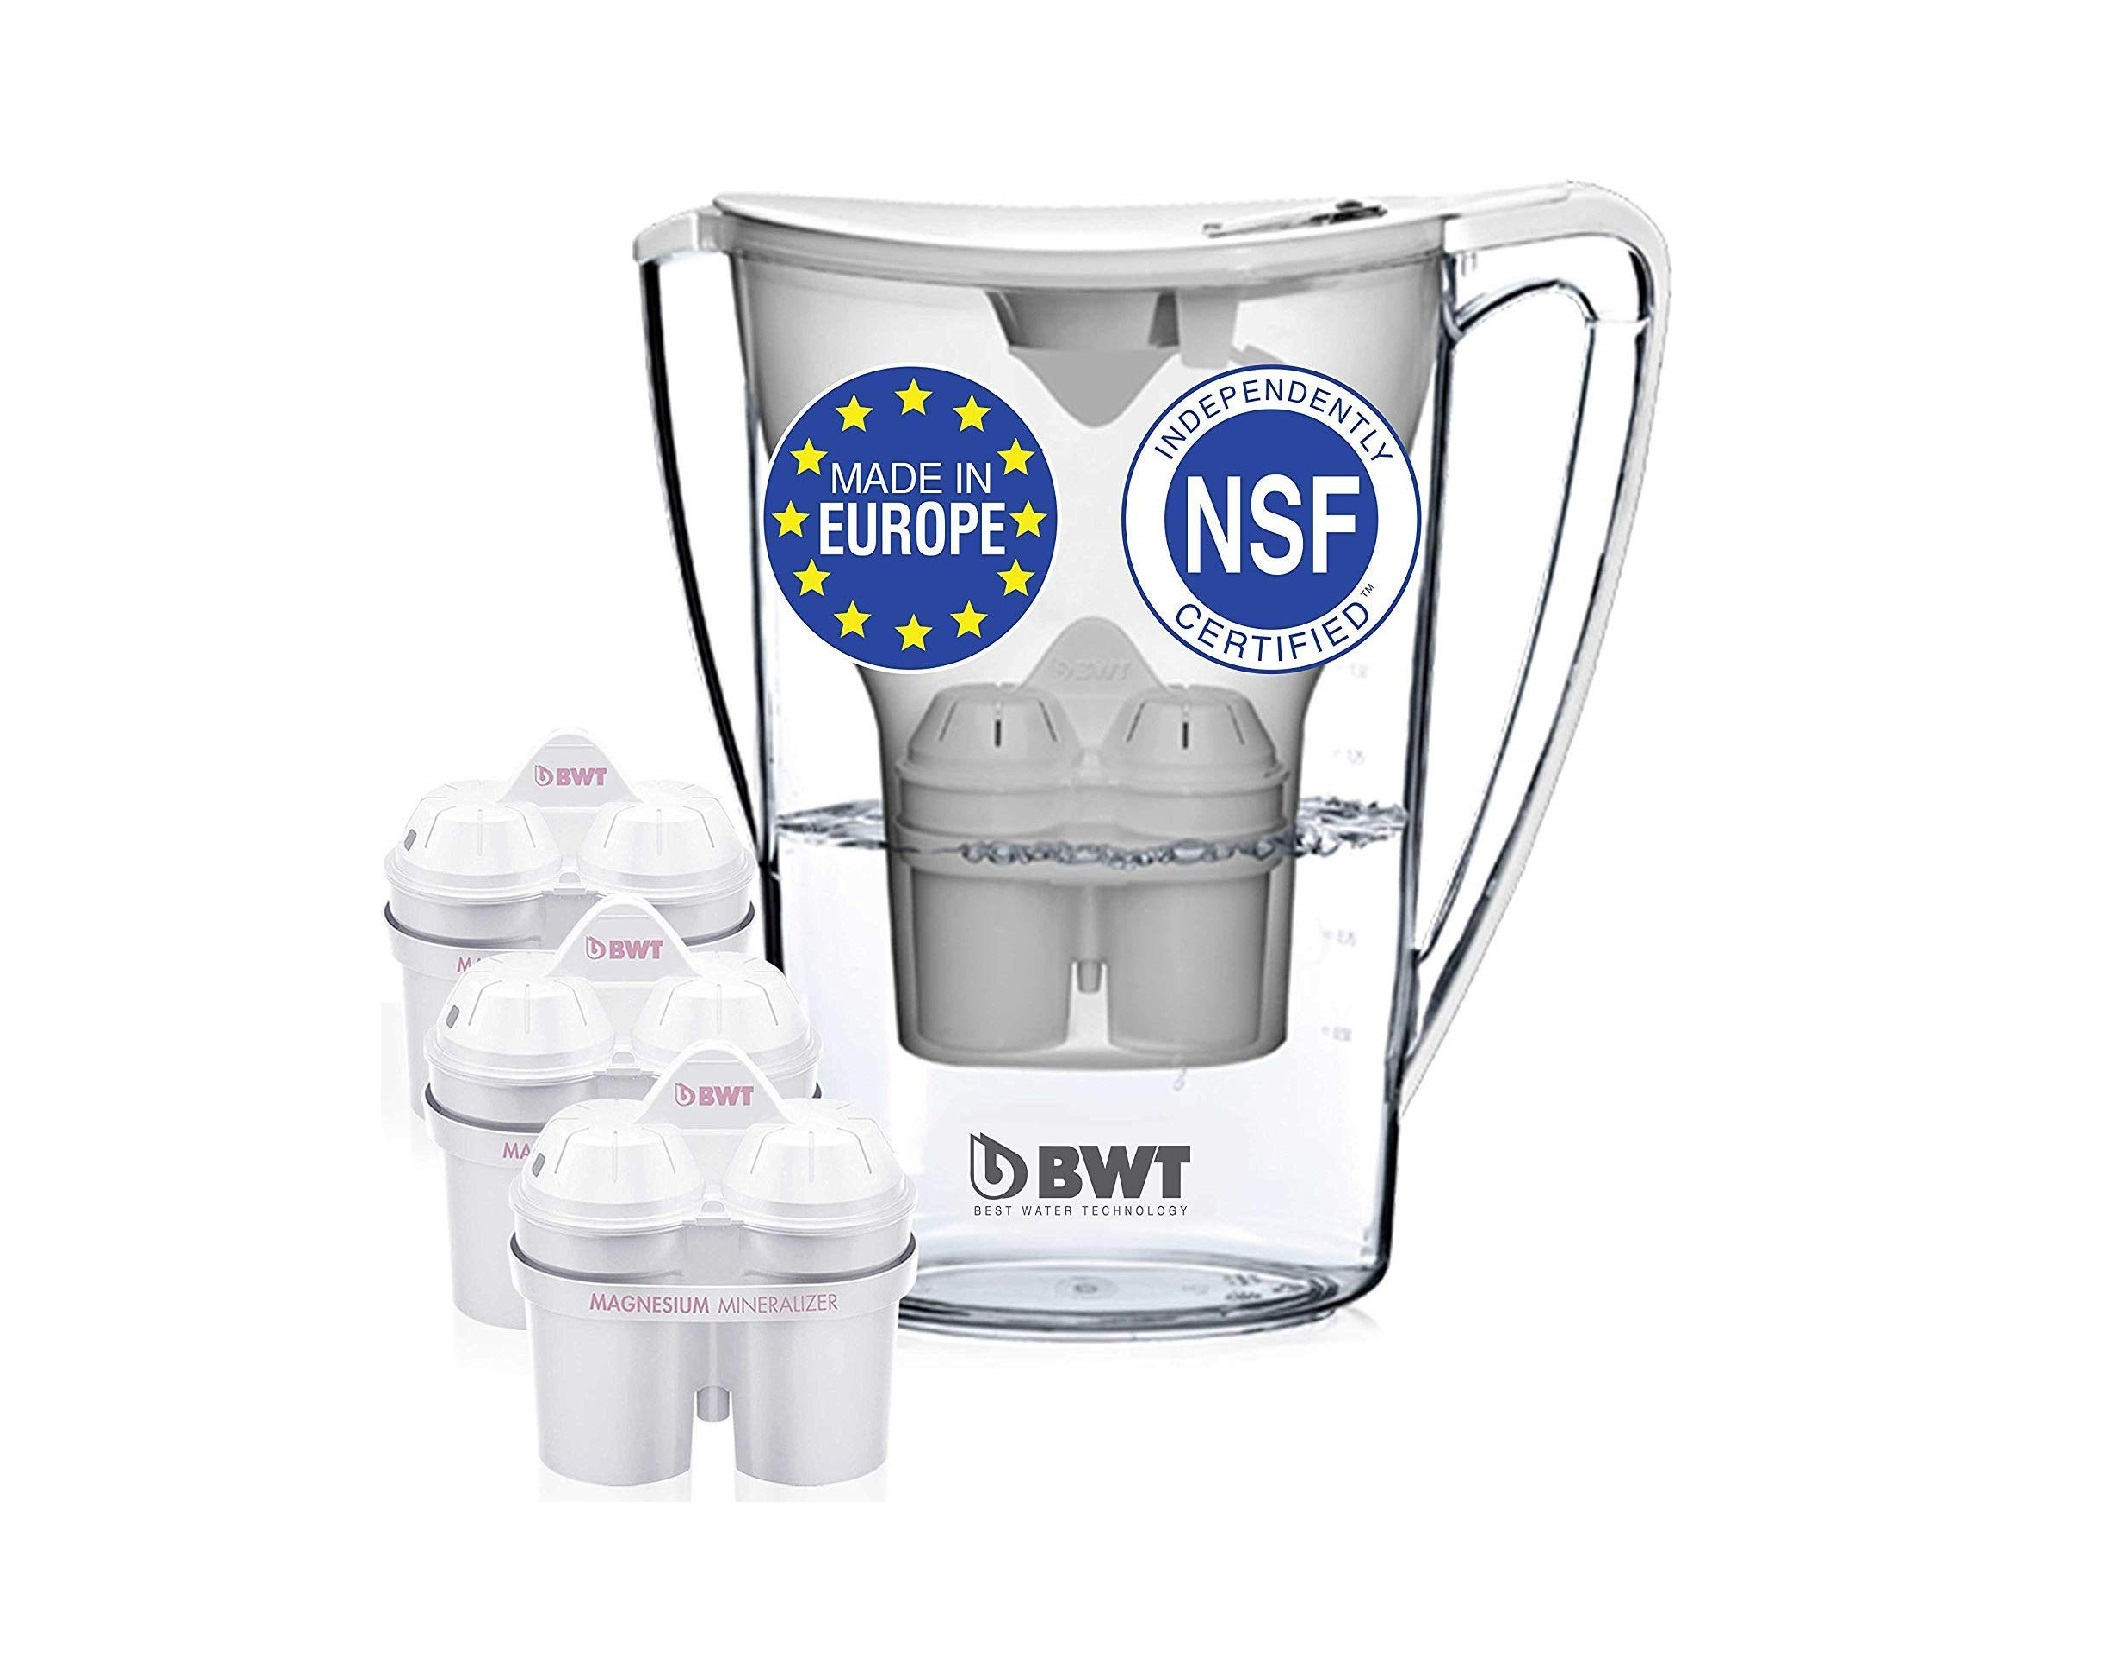 Top 5 Best Alkaline Water Pitchers In 2020 Reviews